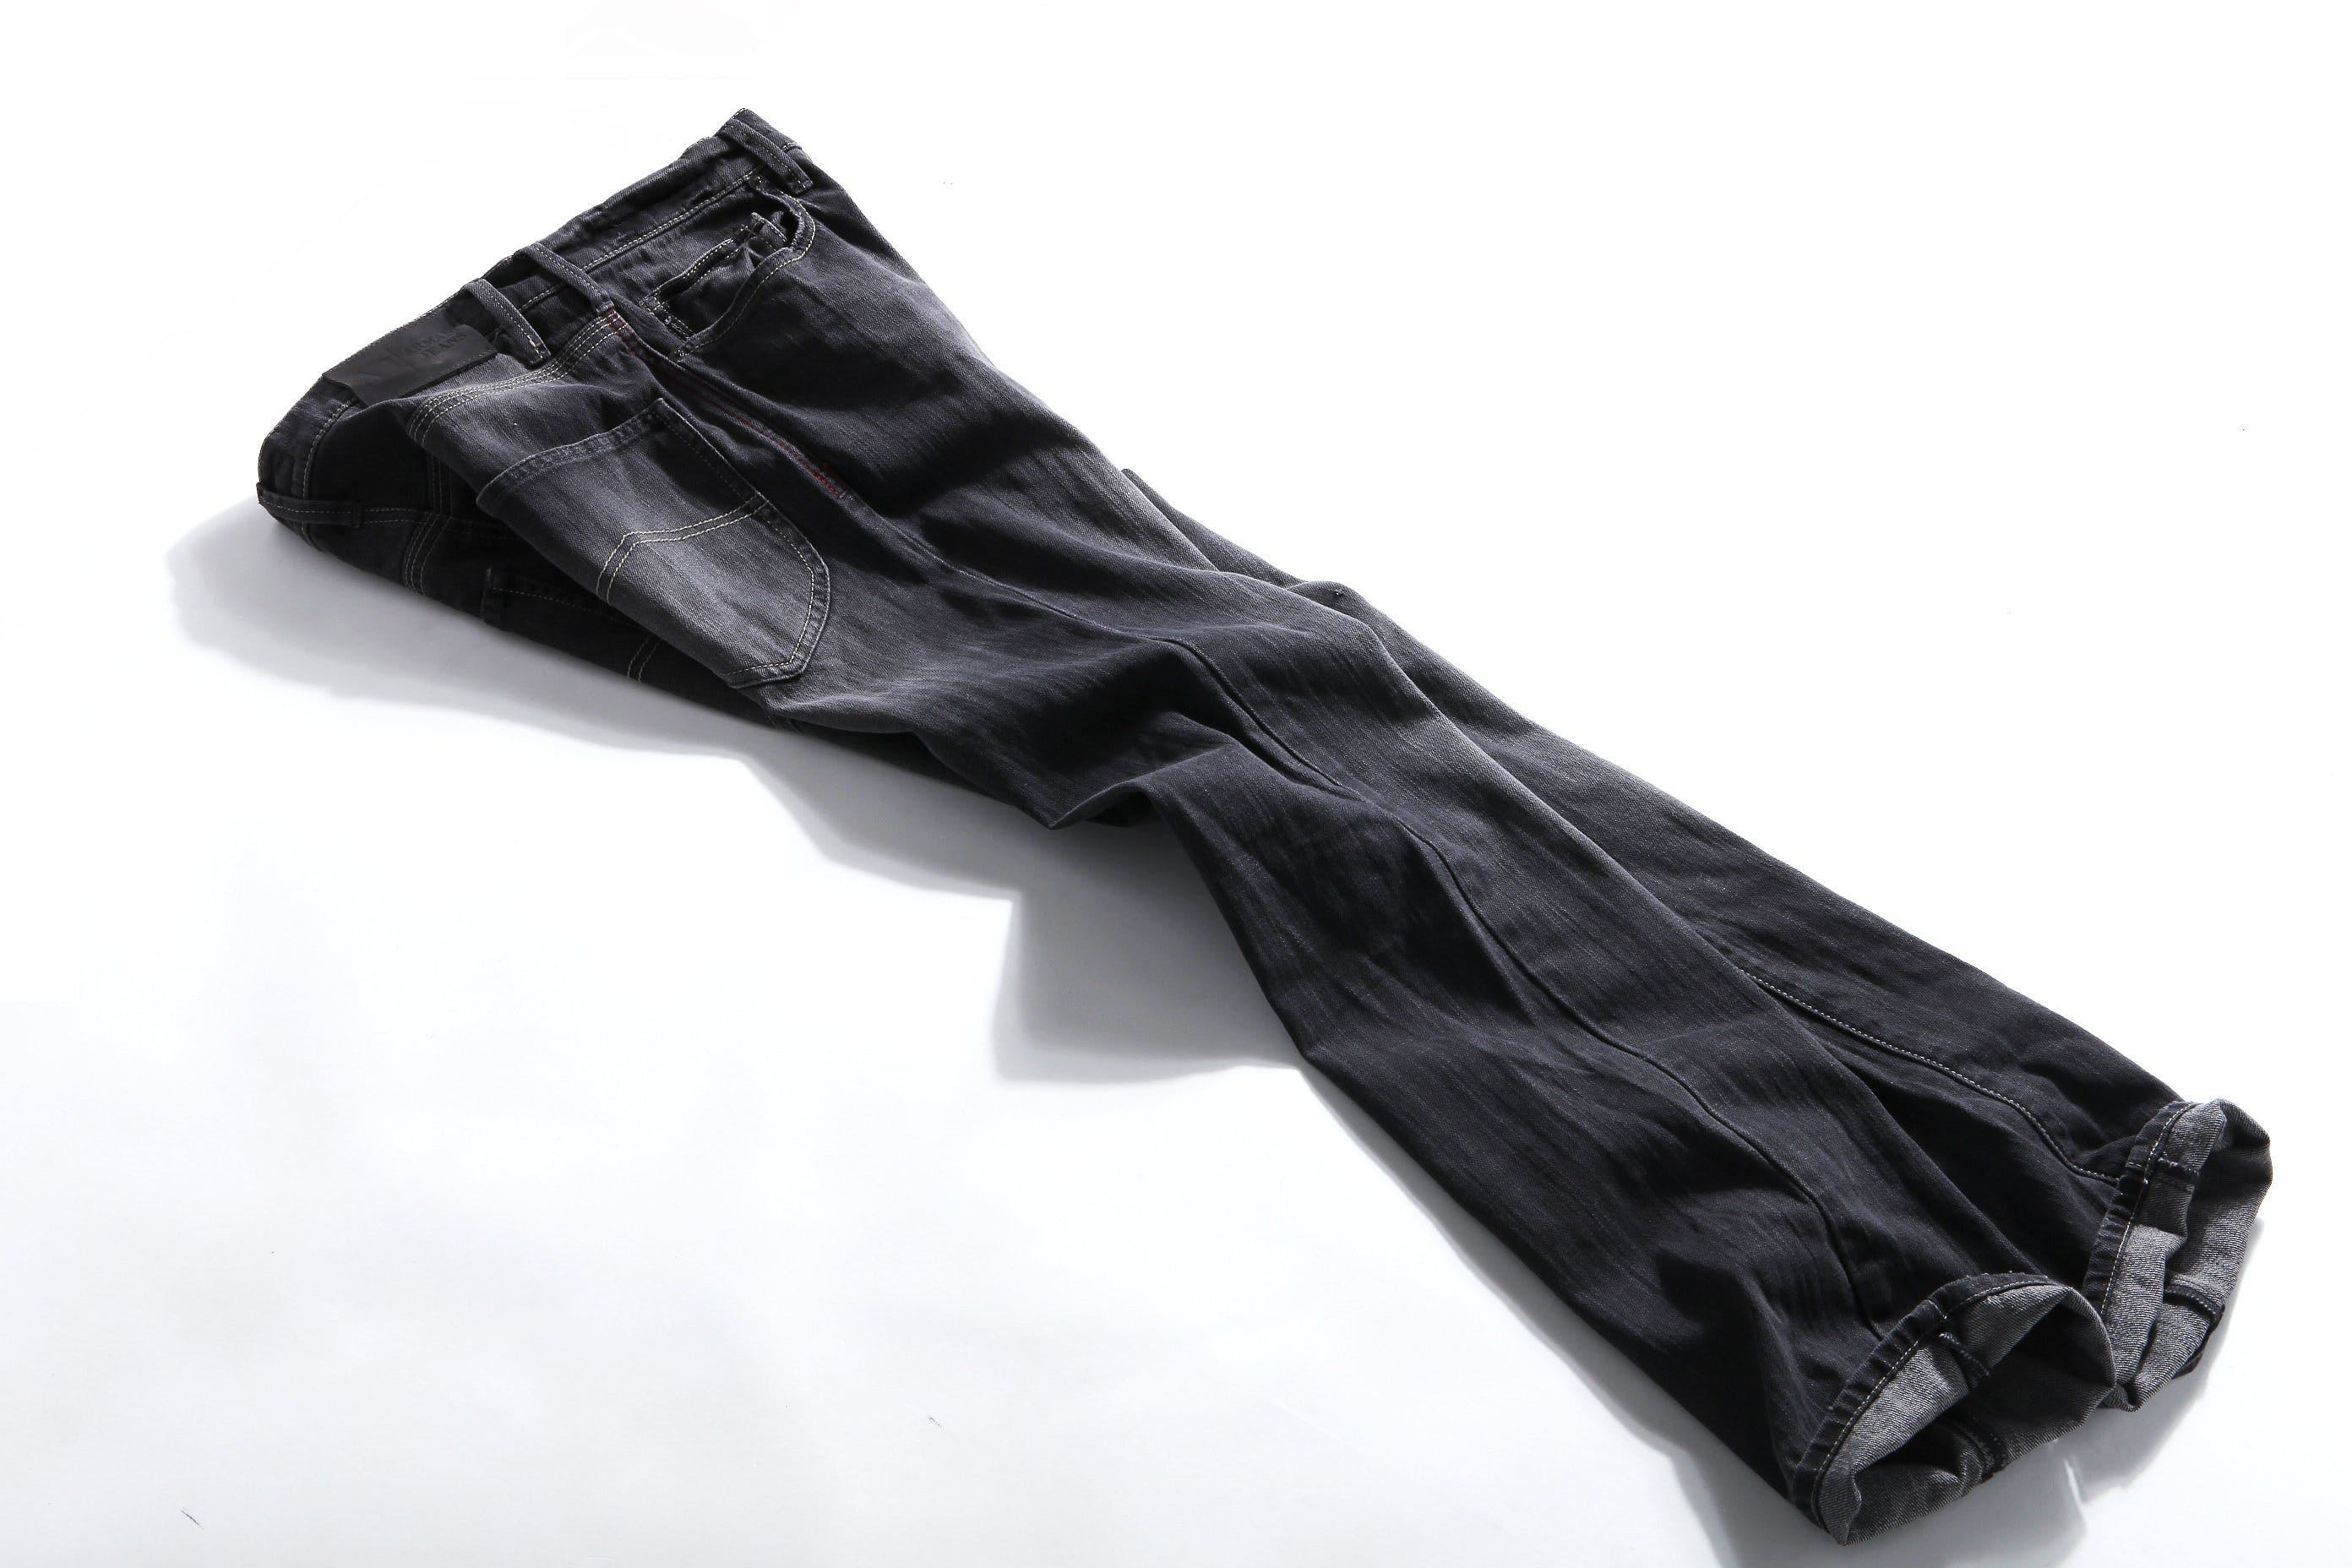 Black Denim Jeans on White Panel